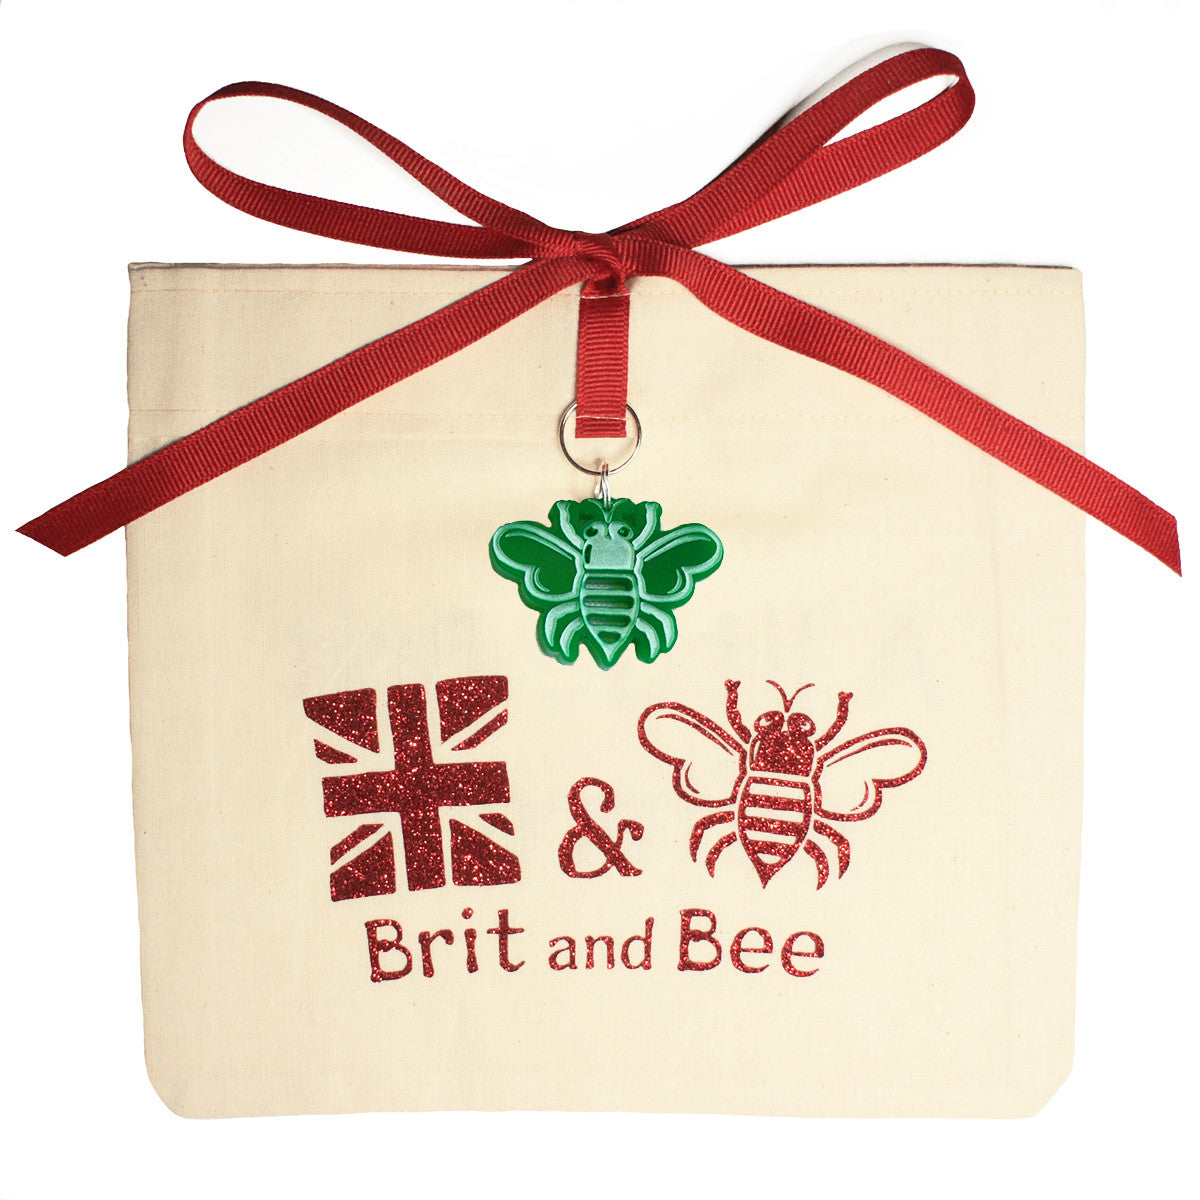 Brit and Bee Sorority Lil' Decal - Alpha Chi Omega